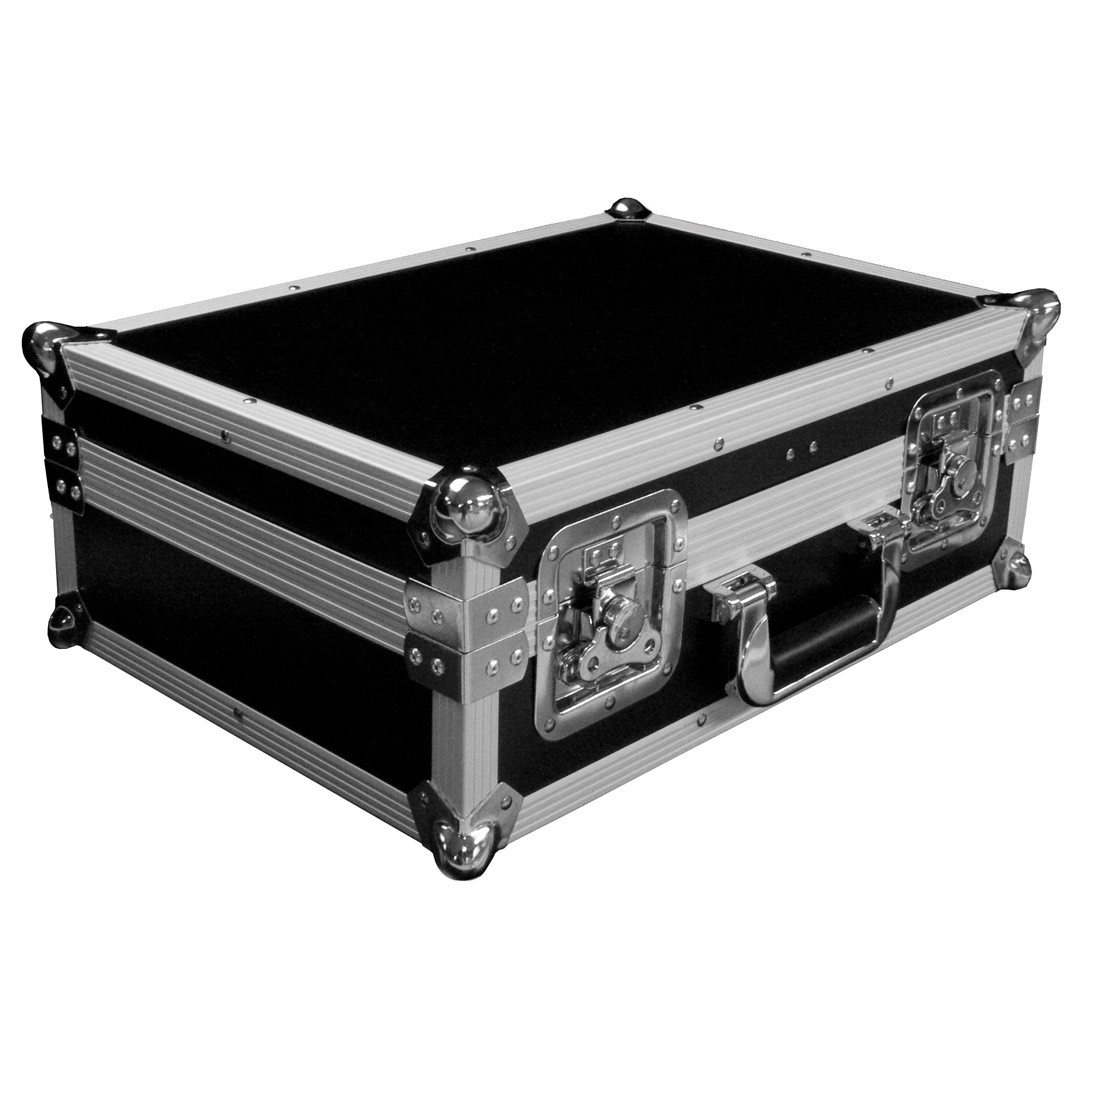 Acf Sw Tool Box Cases Other Cases Products Adj Group